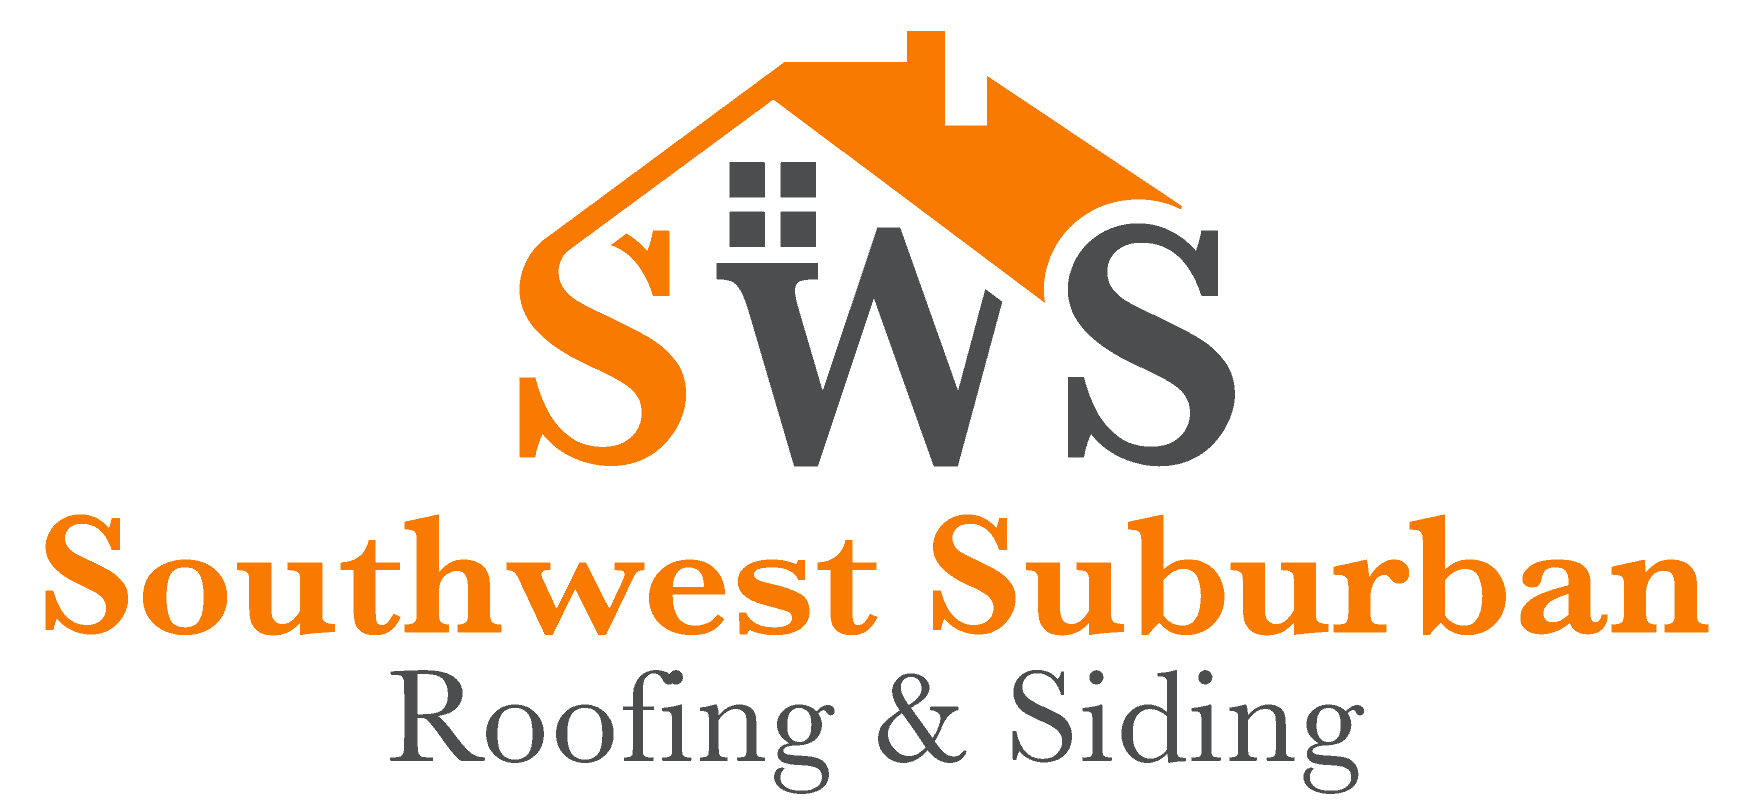 Sws Roofing In Orland Park Is Now Offering Premier Roofing Damage Repair Throughout Illinois With Images Roofing Orland Park